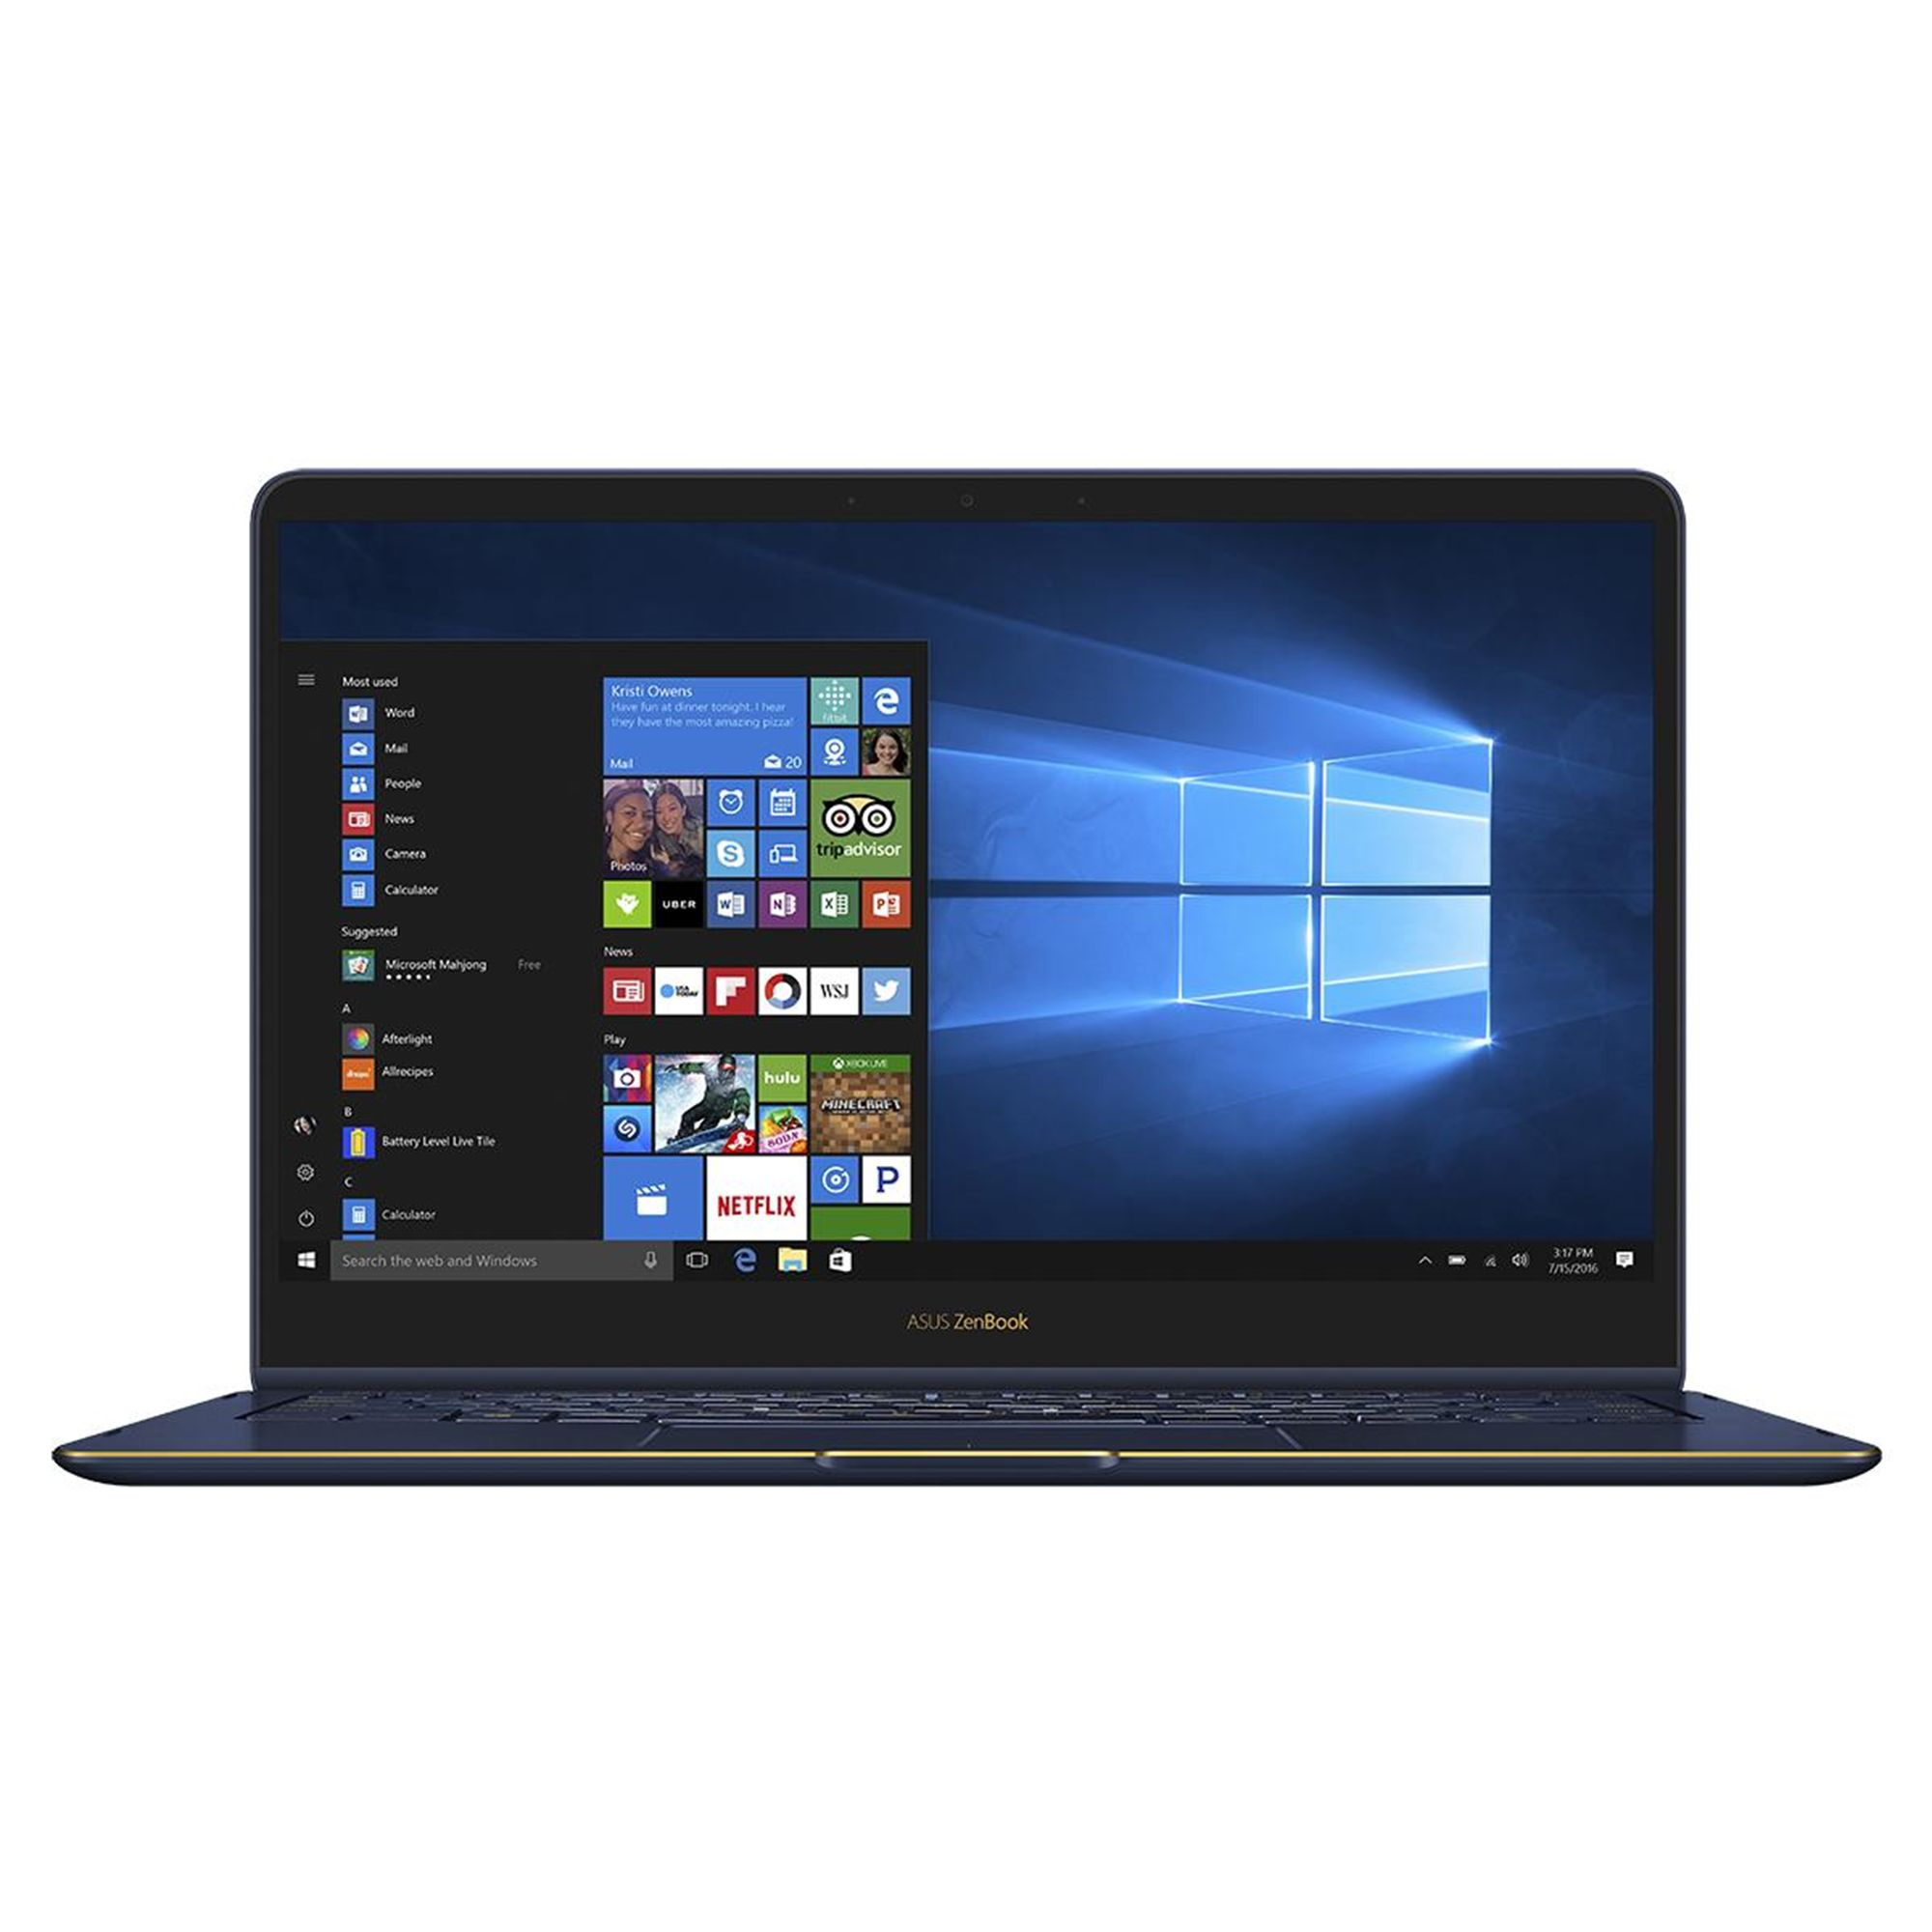 Ultrabook Asus ZenBook Flip S UX370UA 13.3 Full HD Touch Intel Core i5-8250U RAM 8GB SSD 256GB Windows 10 Home Albastru